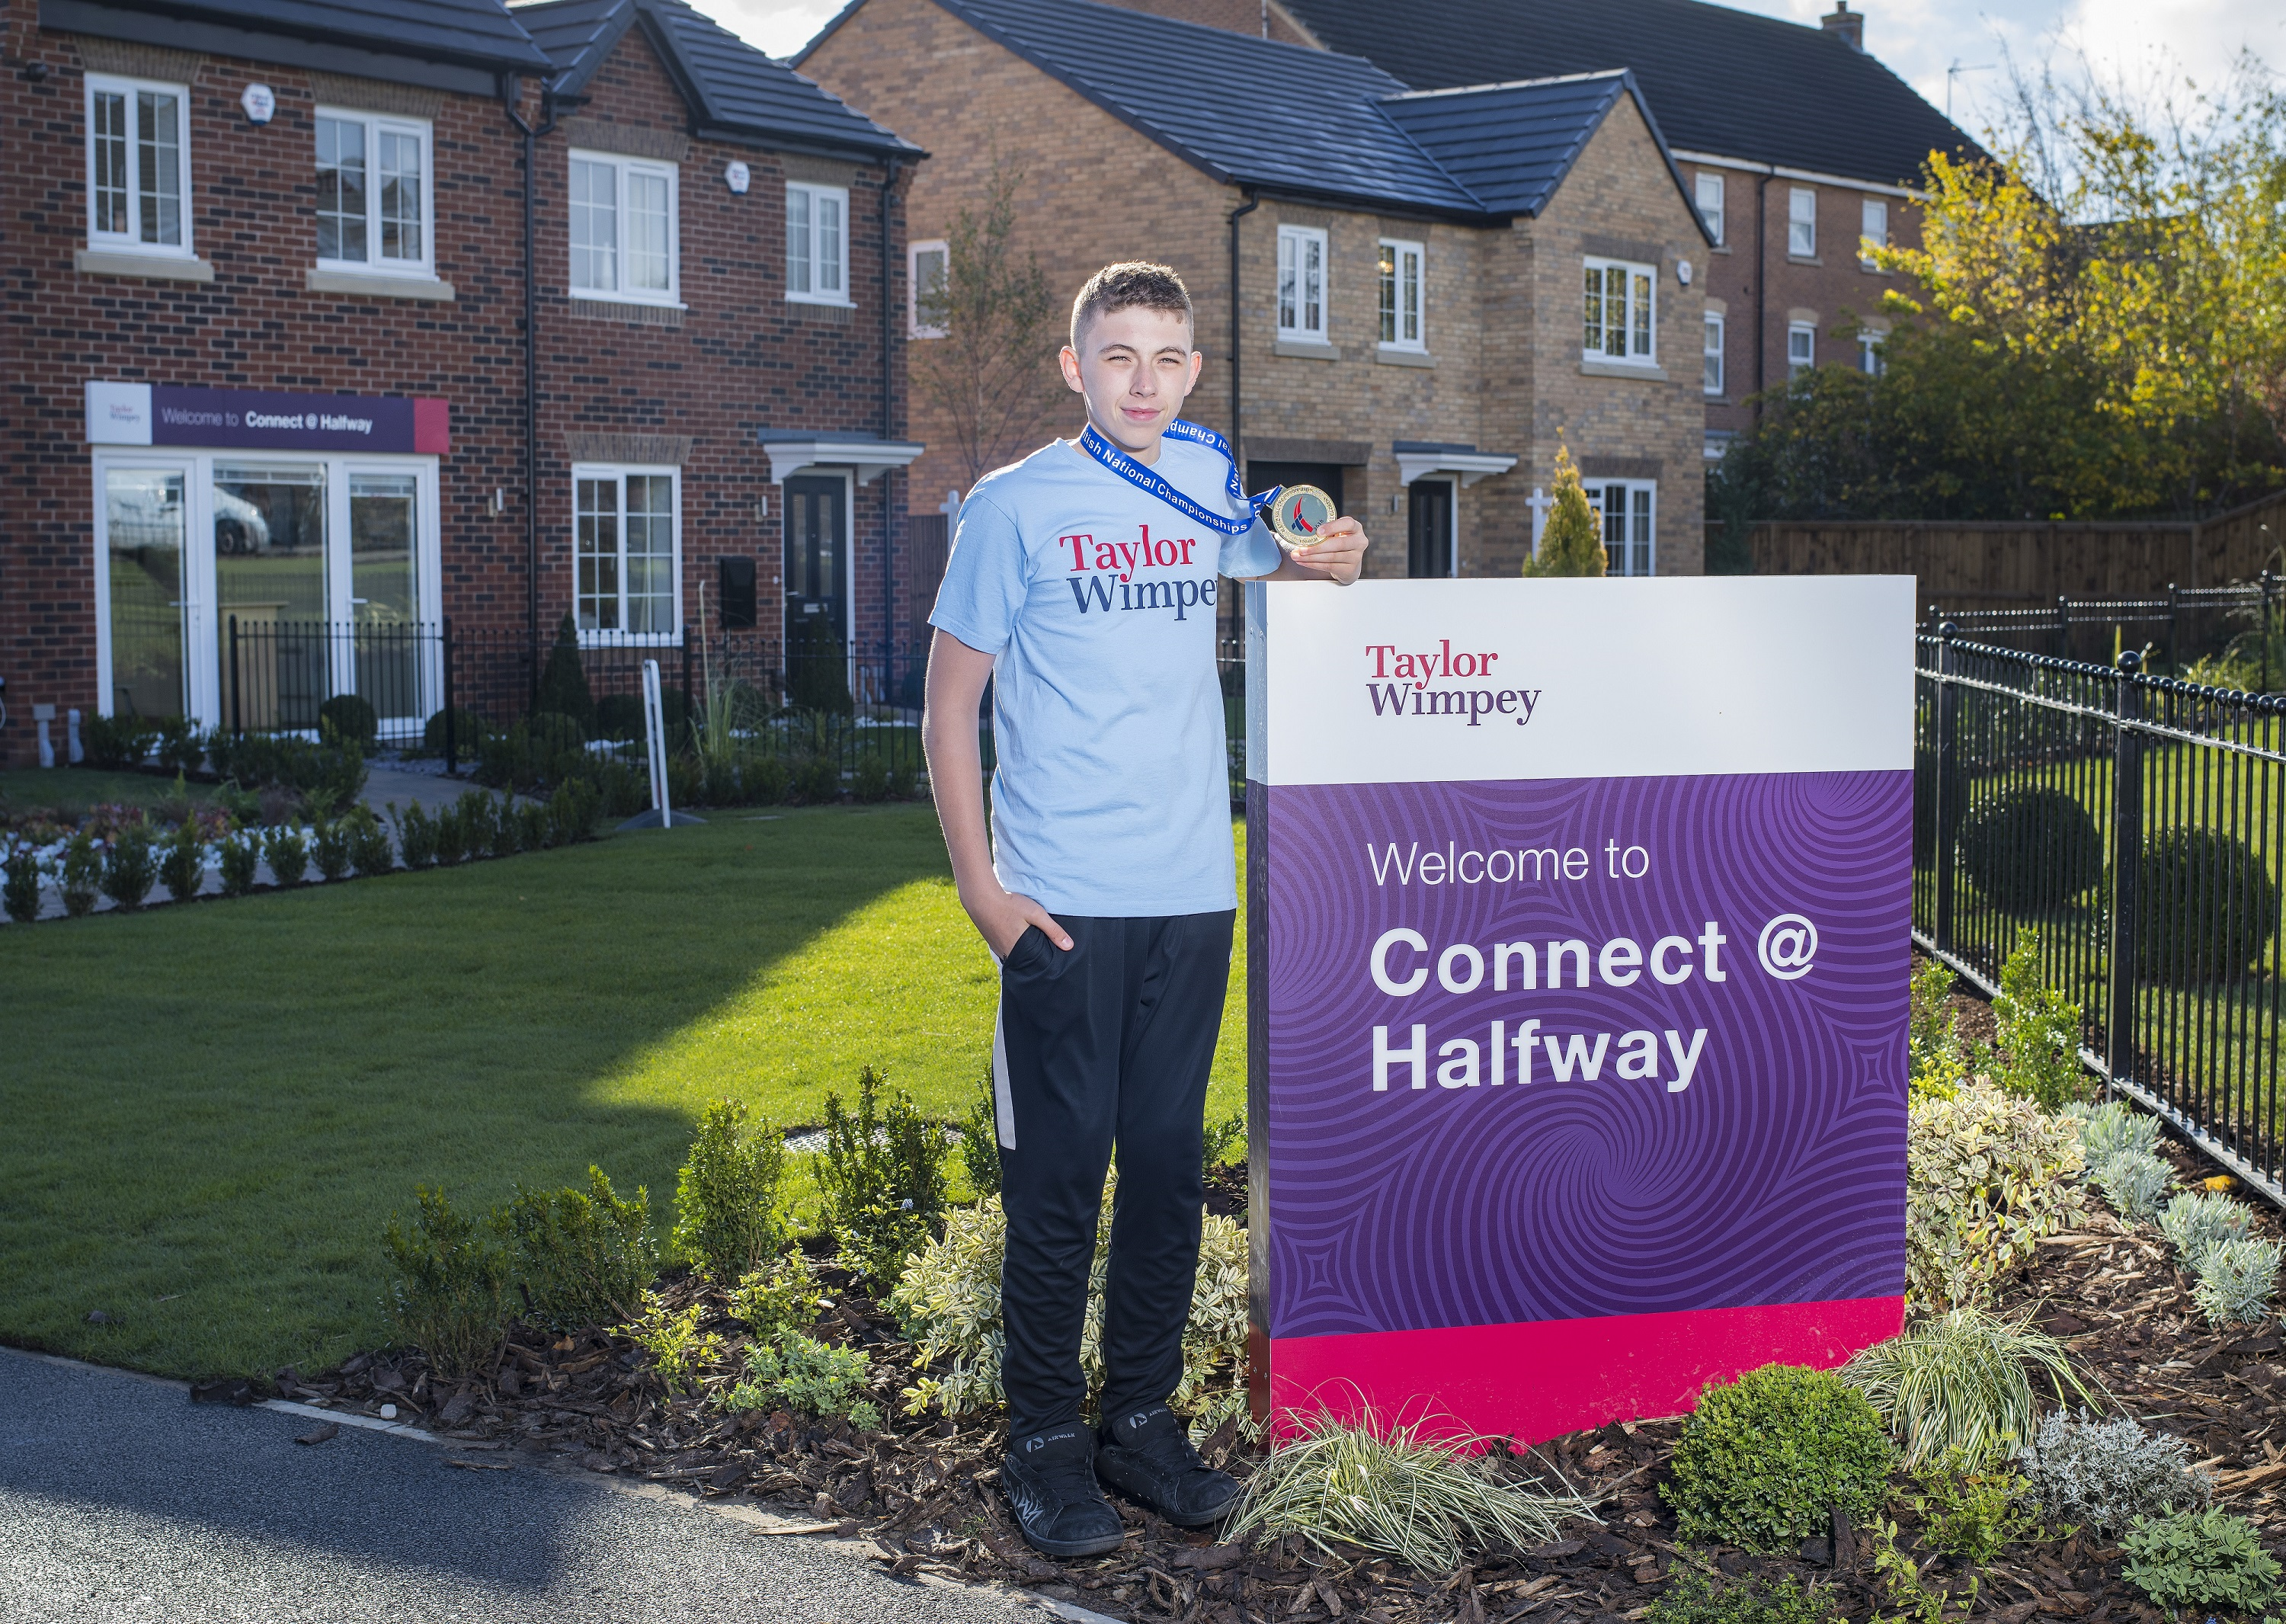 Zak Lambert visited Taylor Wimpeys Connect at Halfway development